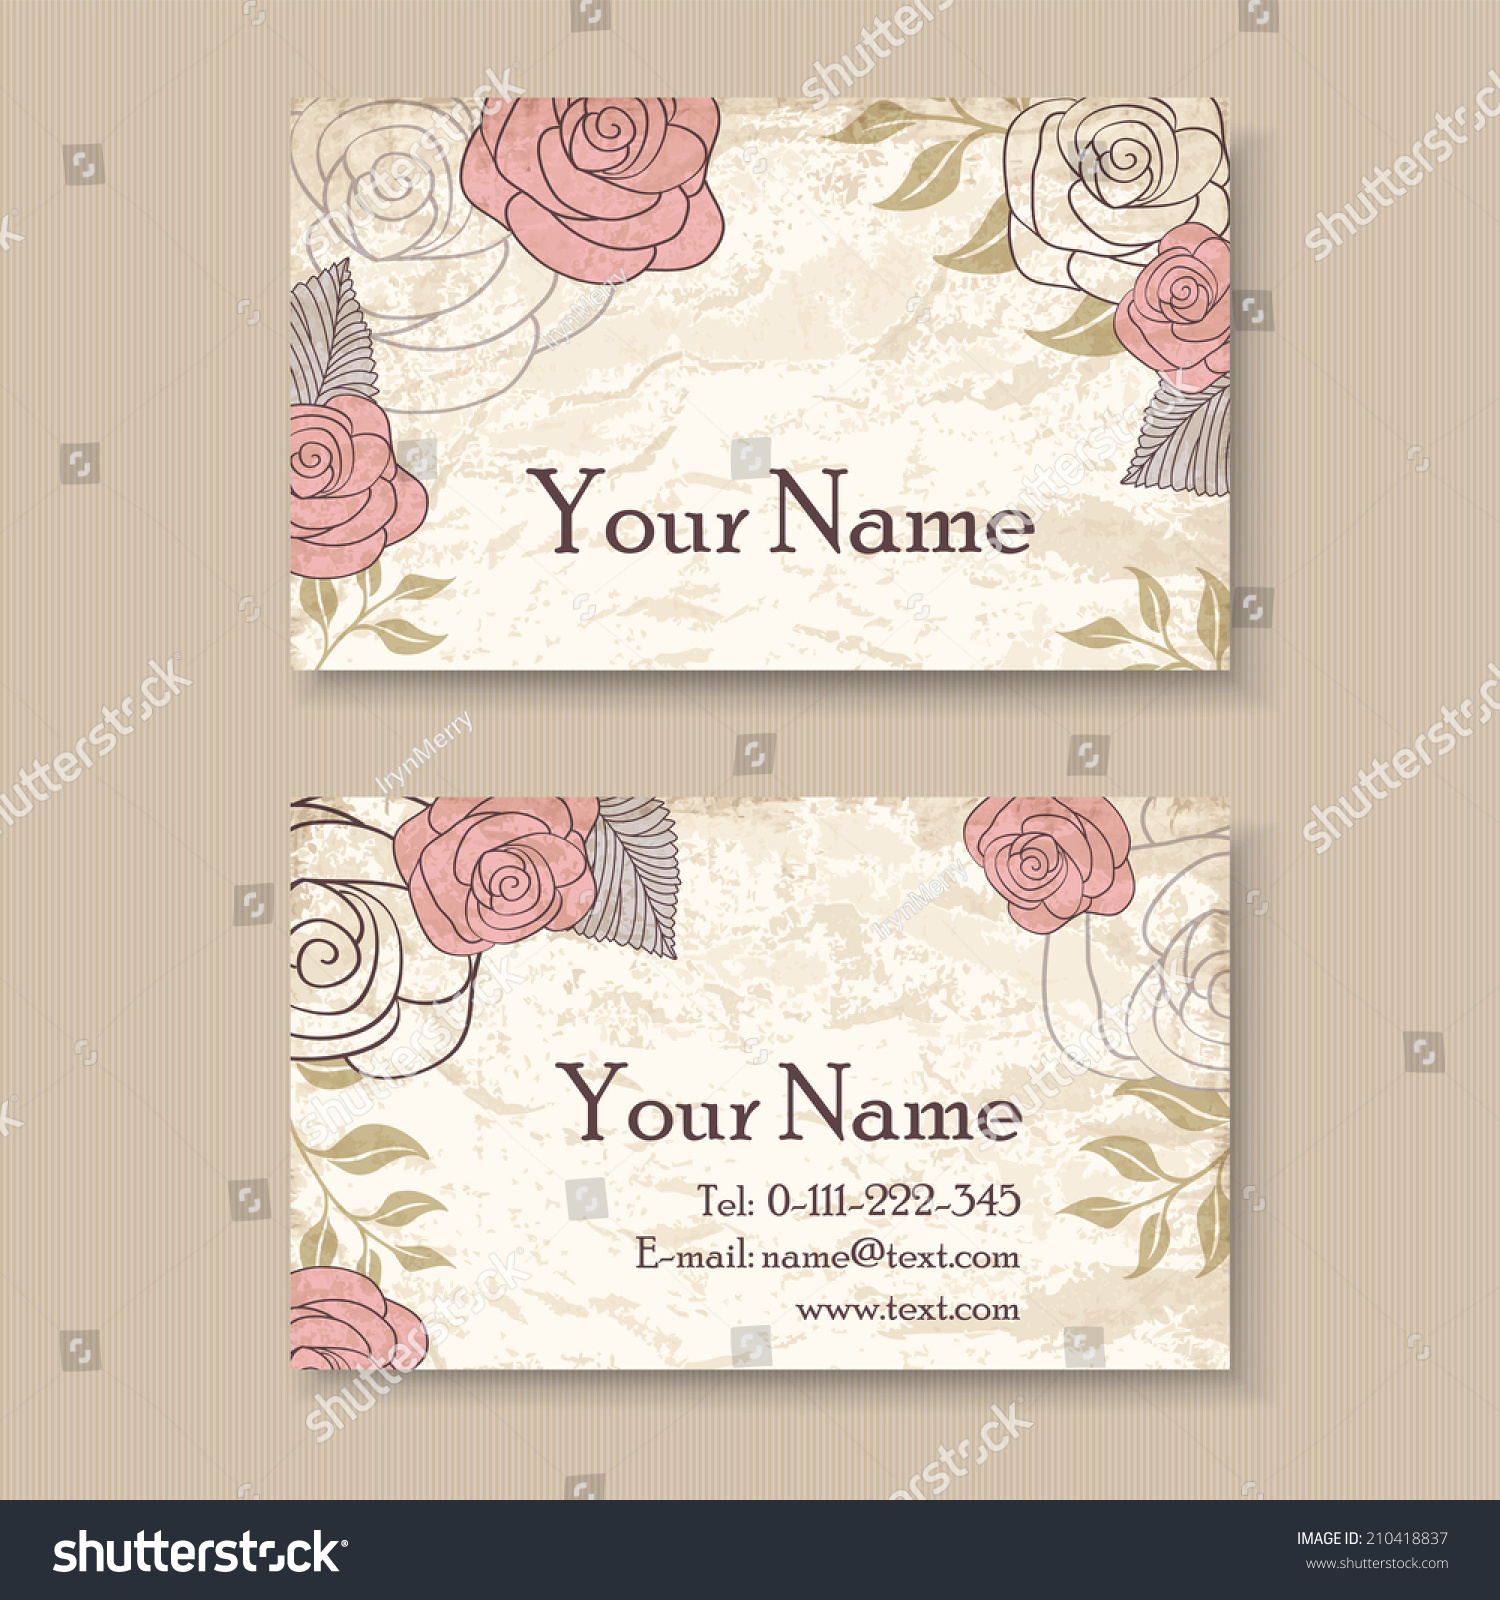 Vintage Floral Business Card Template Roses Stock Vector 210418837 ...